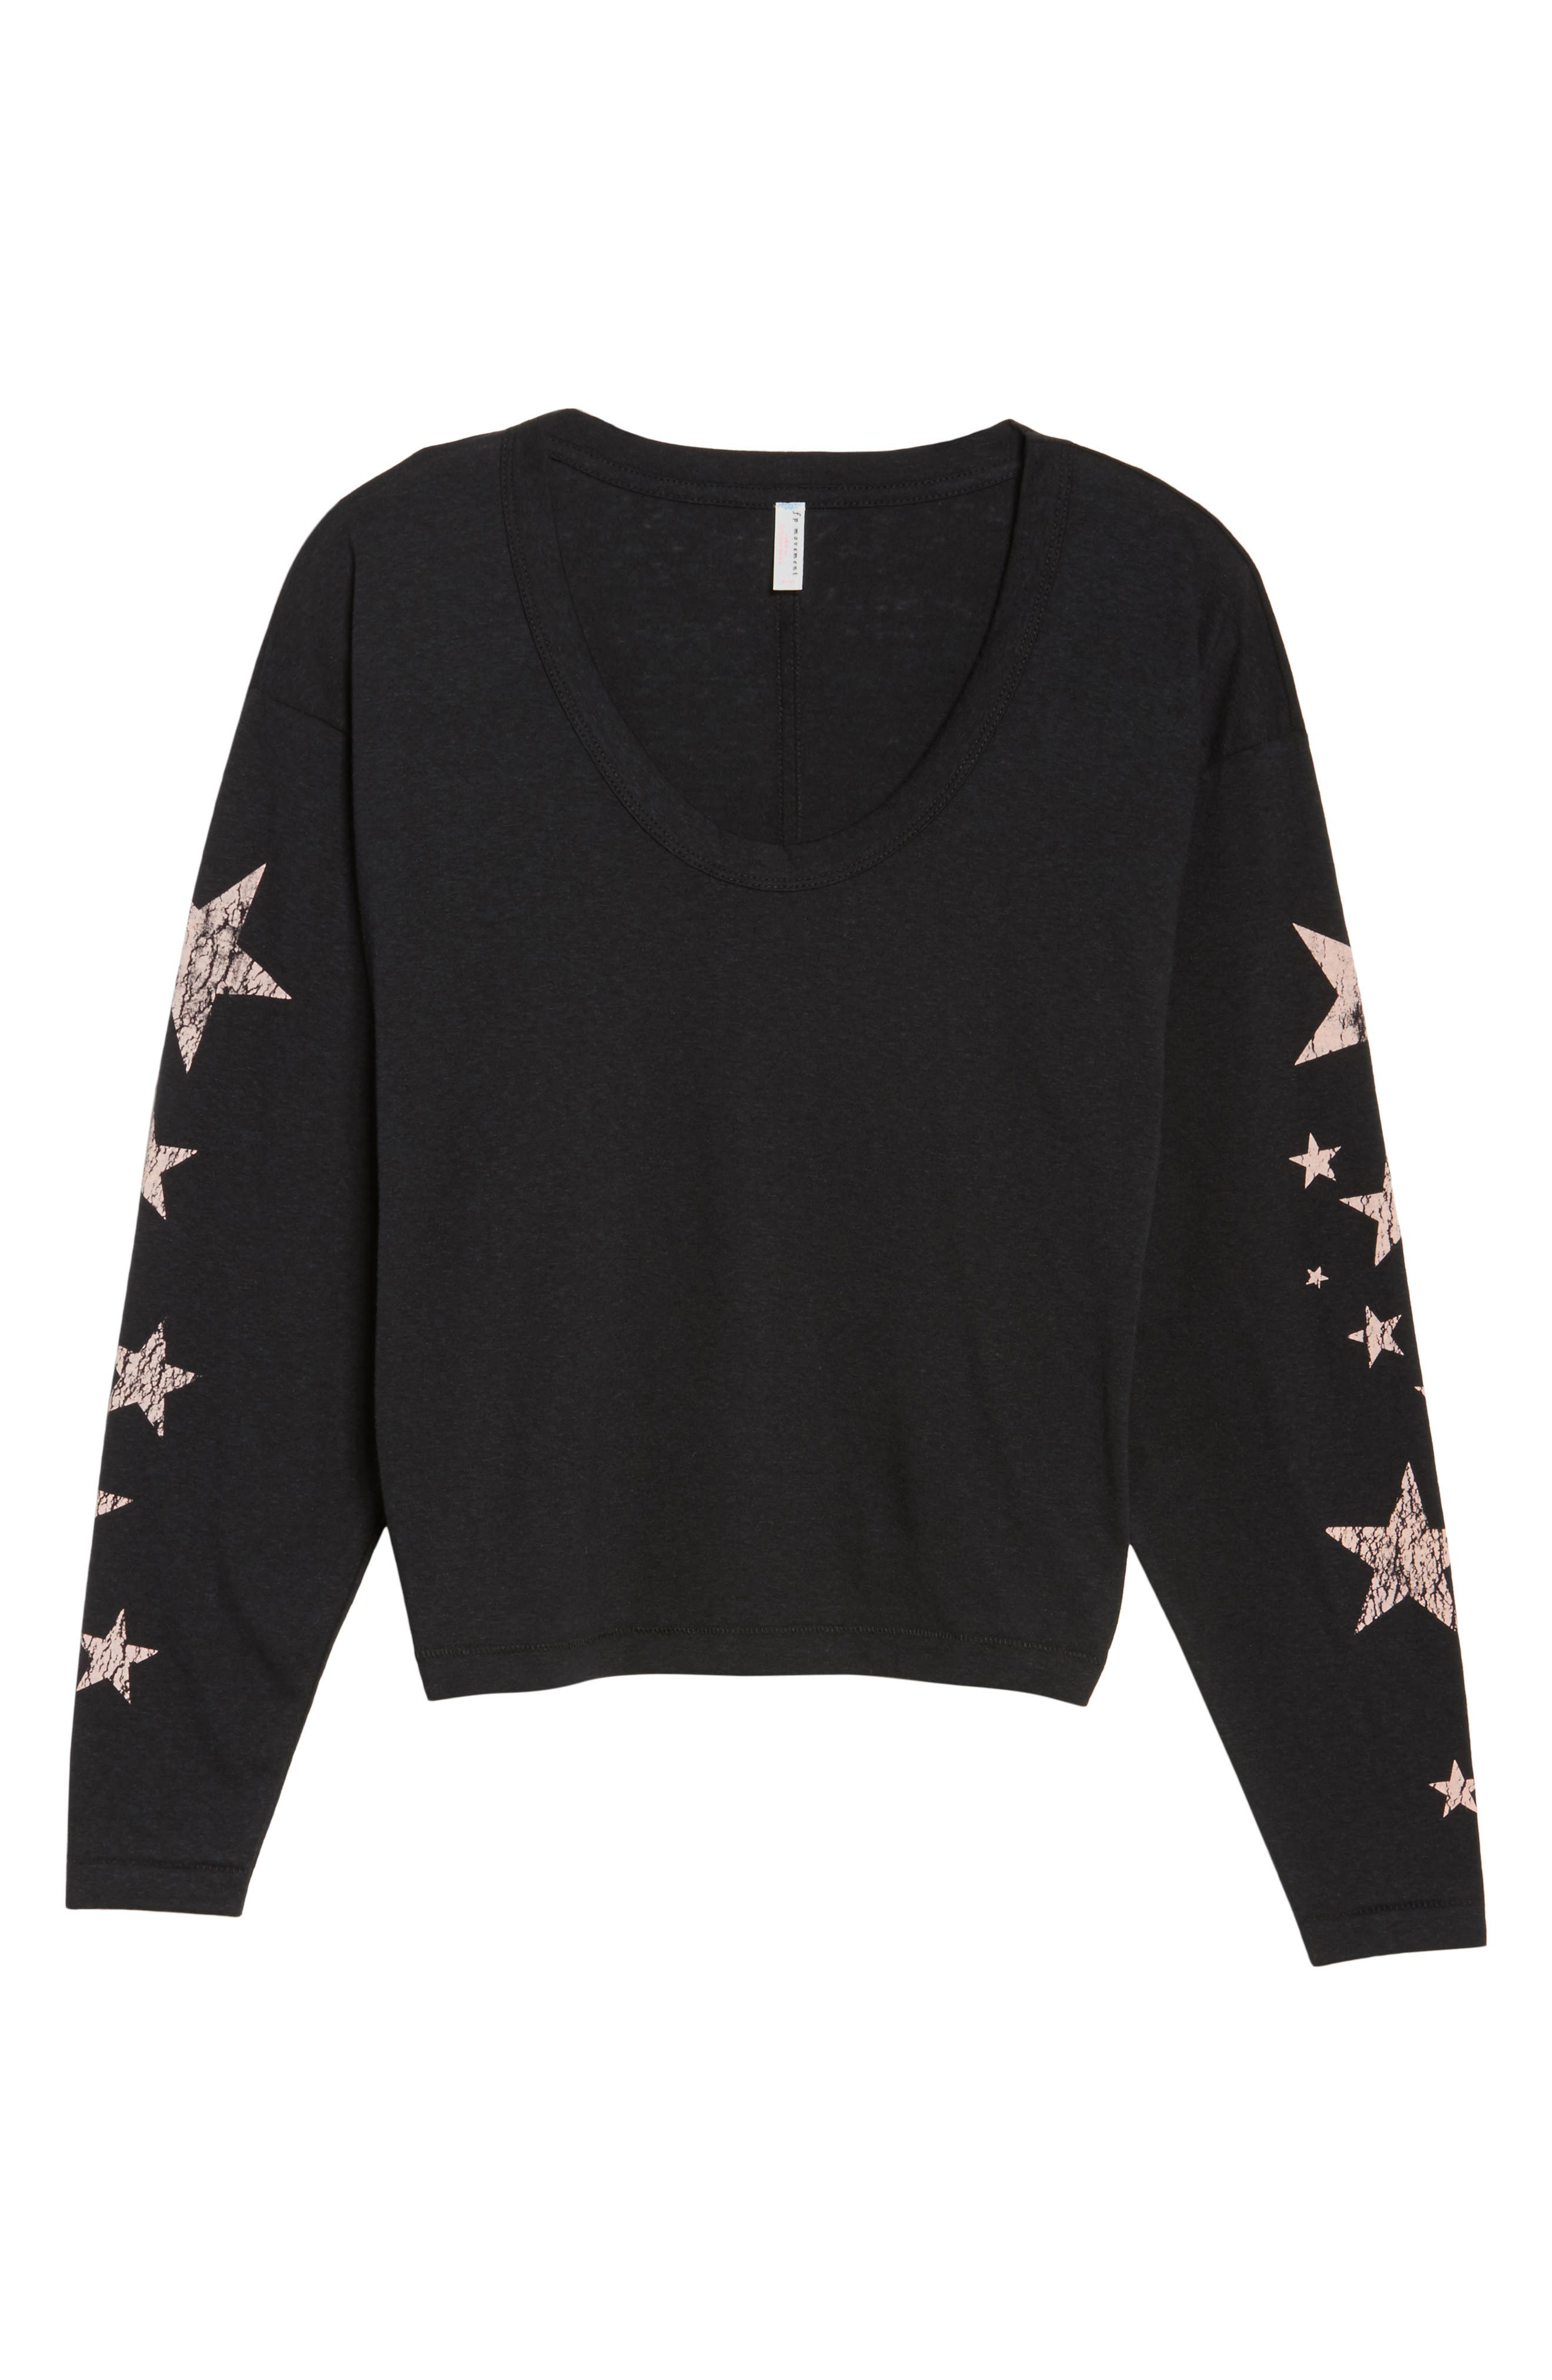 Free People Melrose Star Graphic Top,                             Alternate thumbnail 6, color,                             BLACK